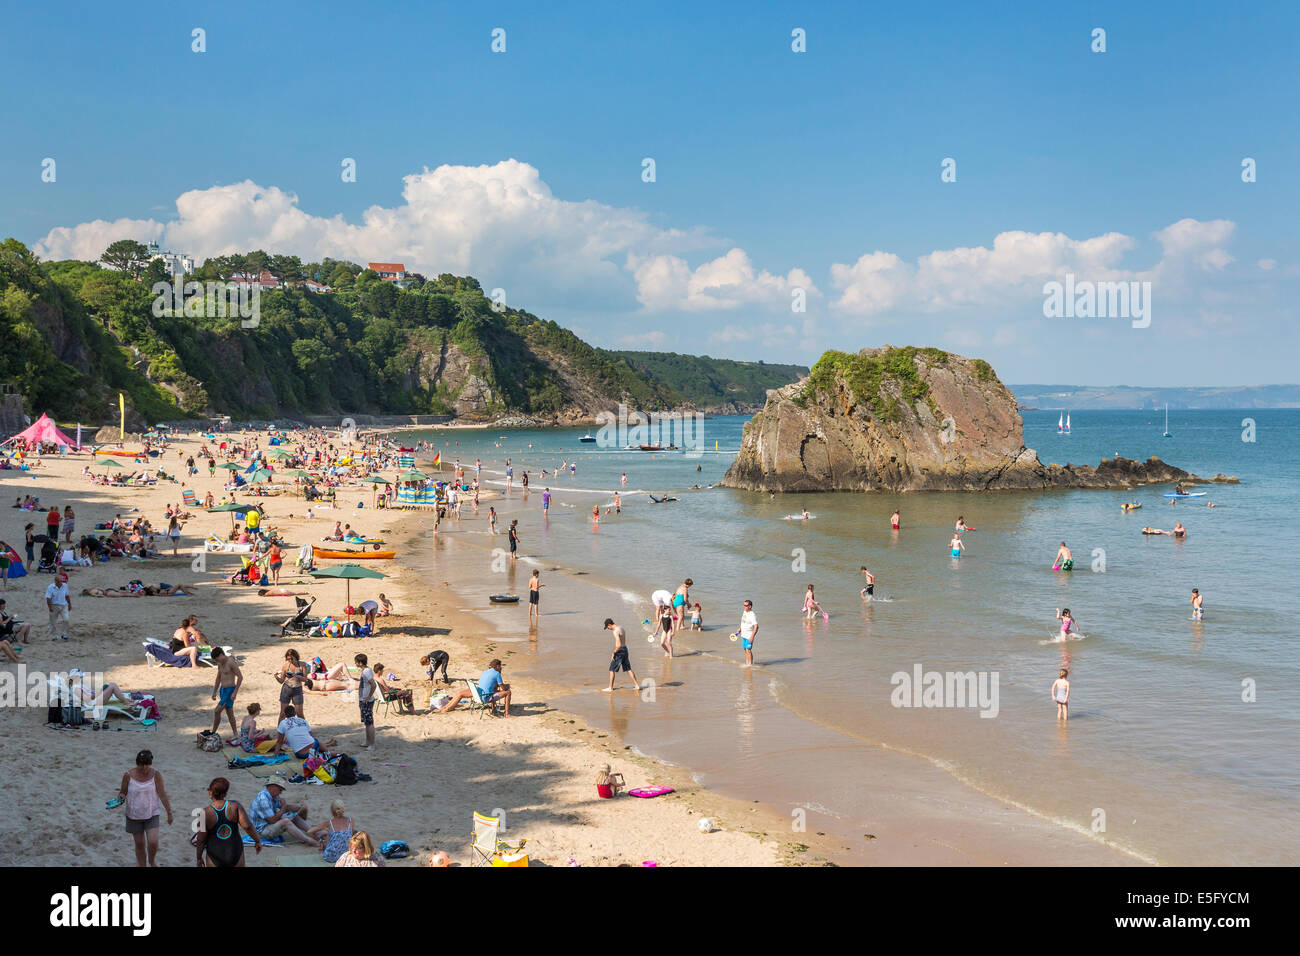 North beach in Tenby packed full of holidaymakers - pictured with Goscar Rock.  Tourism in Wales - Stock Image